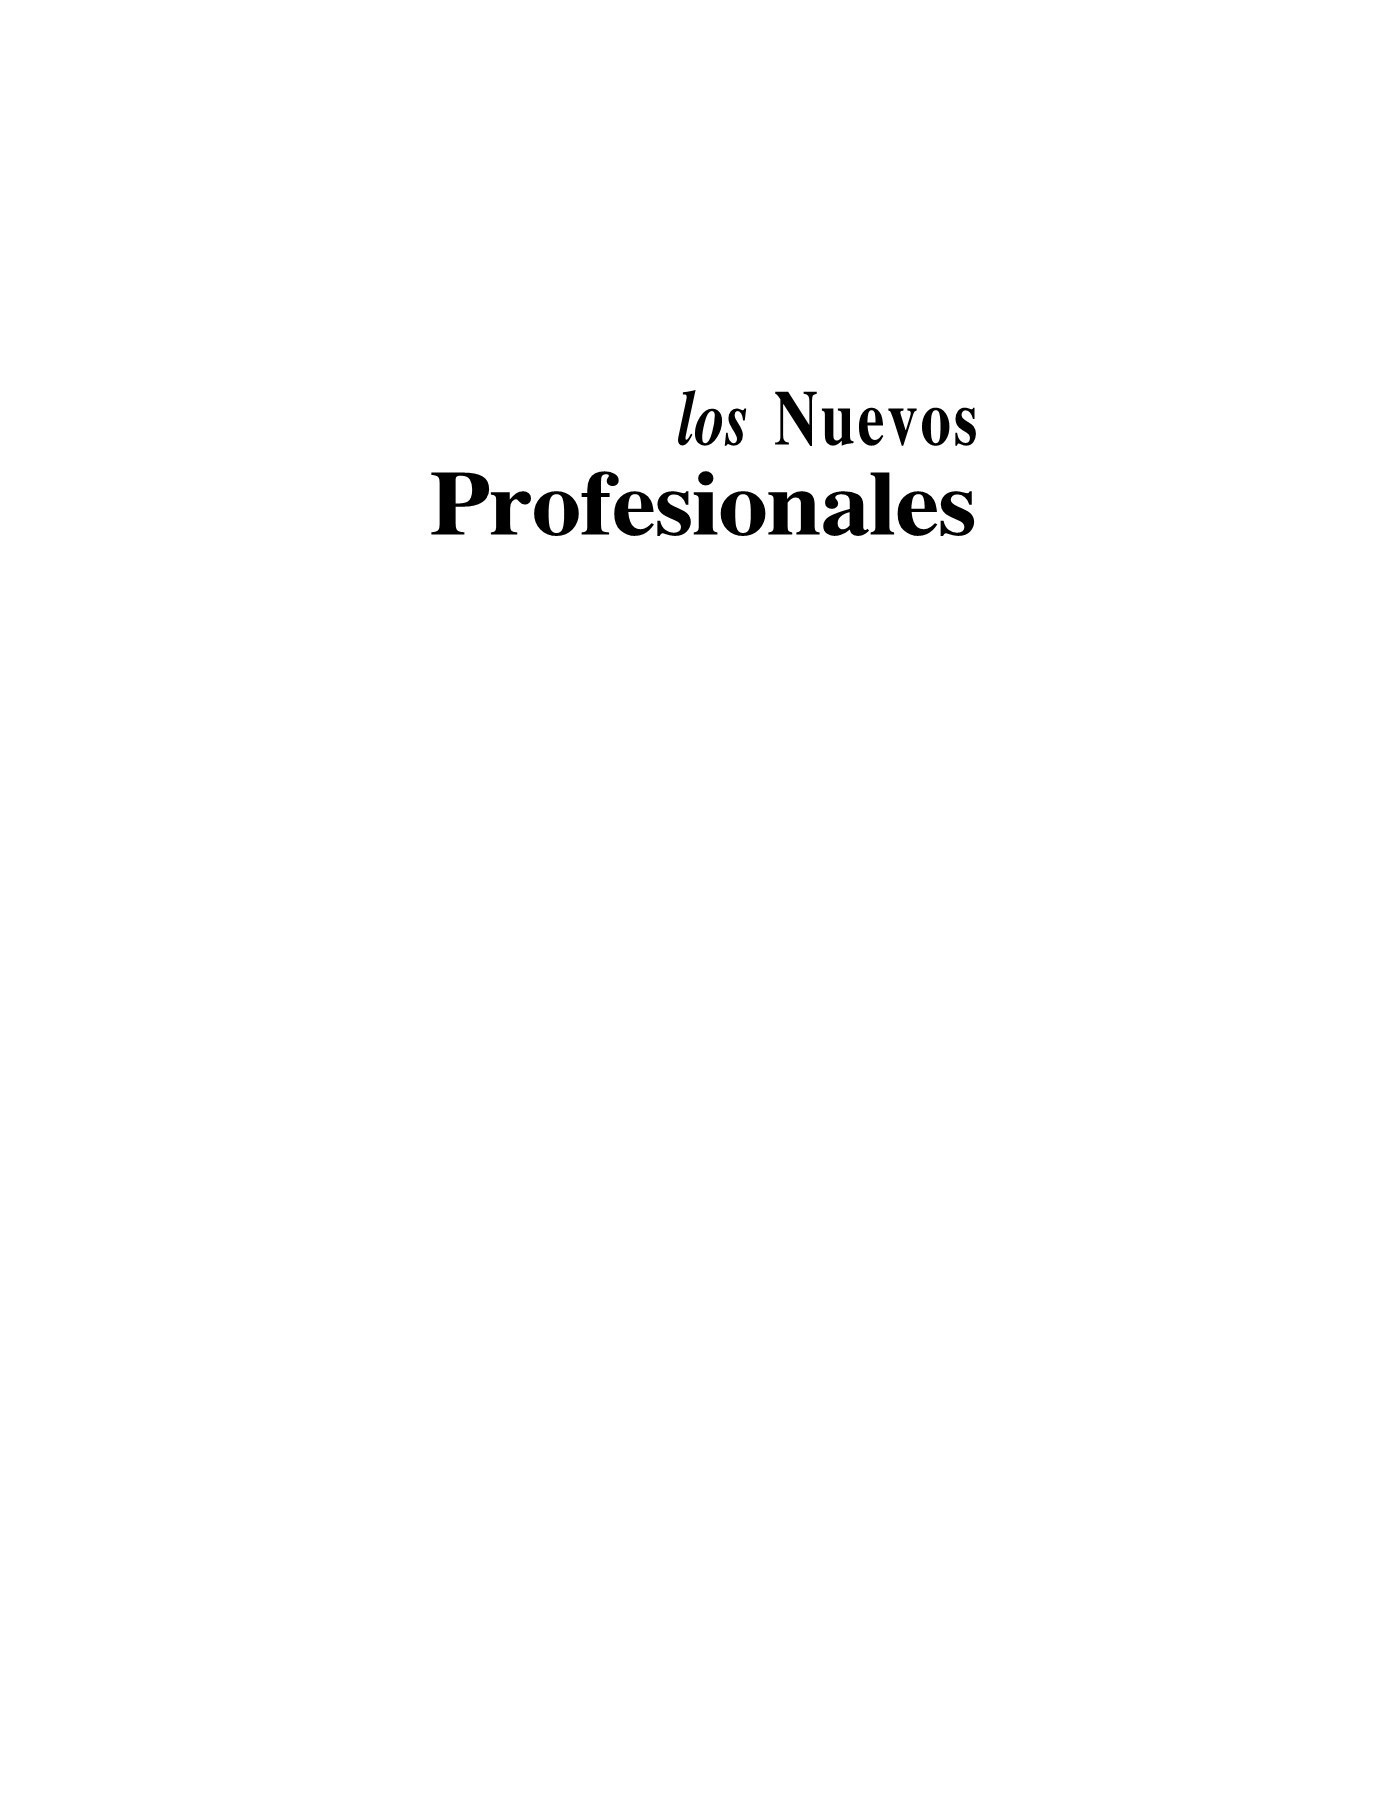 Los Nuevos Profesionales Charles King Pages 1 50 Text Version